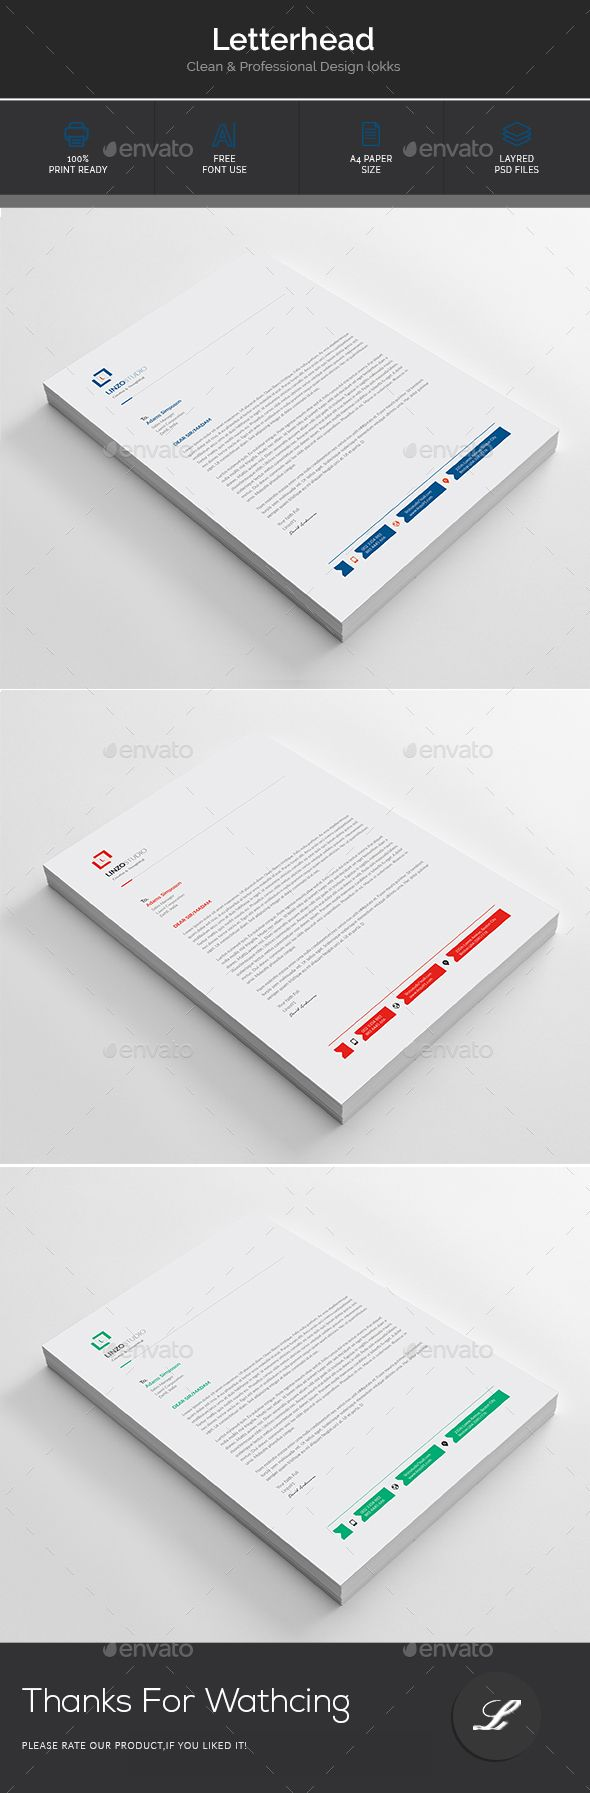 Letterhead      A4 Size With Bleeds     Layers are all well organized.     Three Color Versions     Different two style resume     100% ready to print     Image not include     Free font used     Very easy to edit